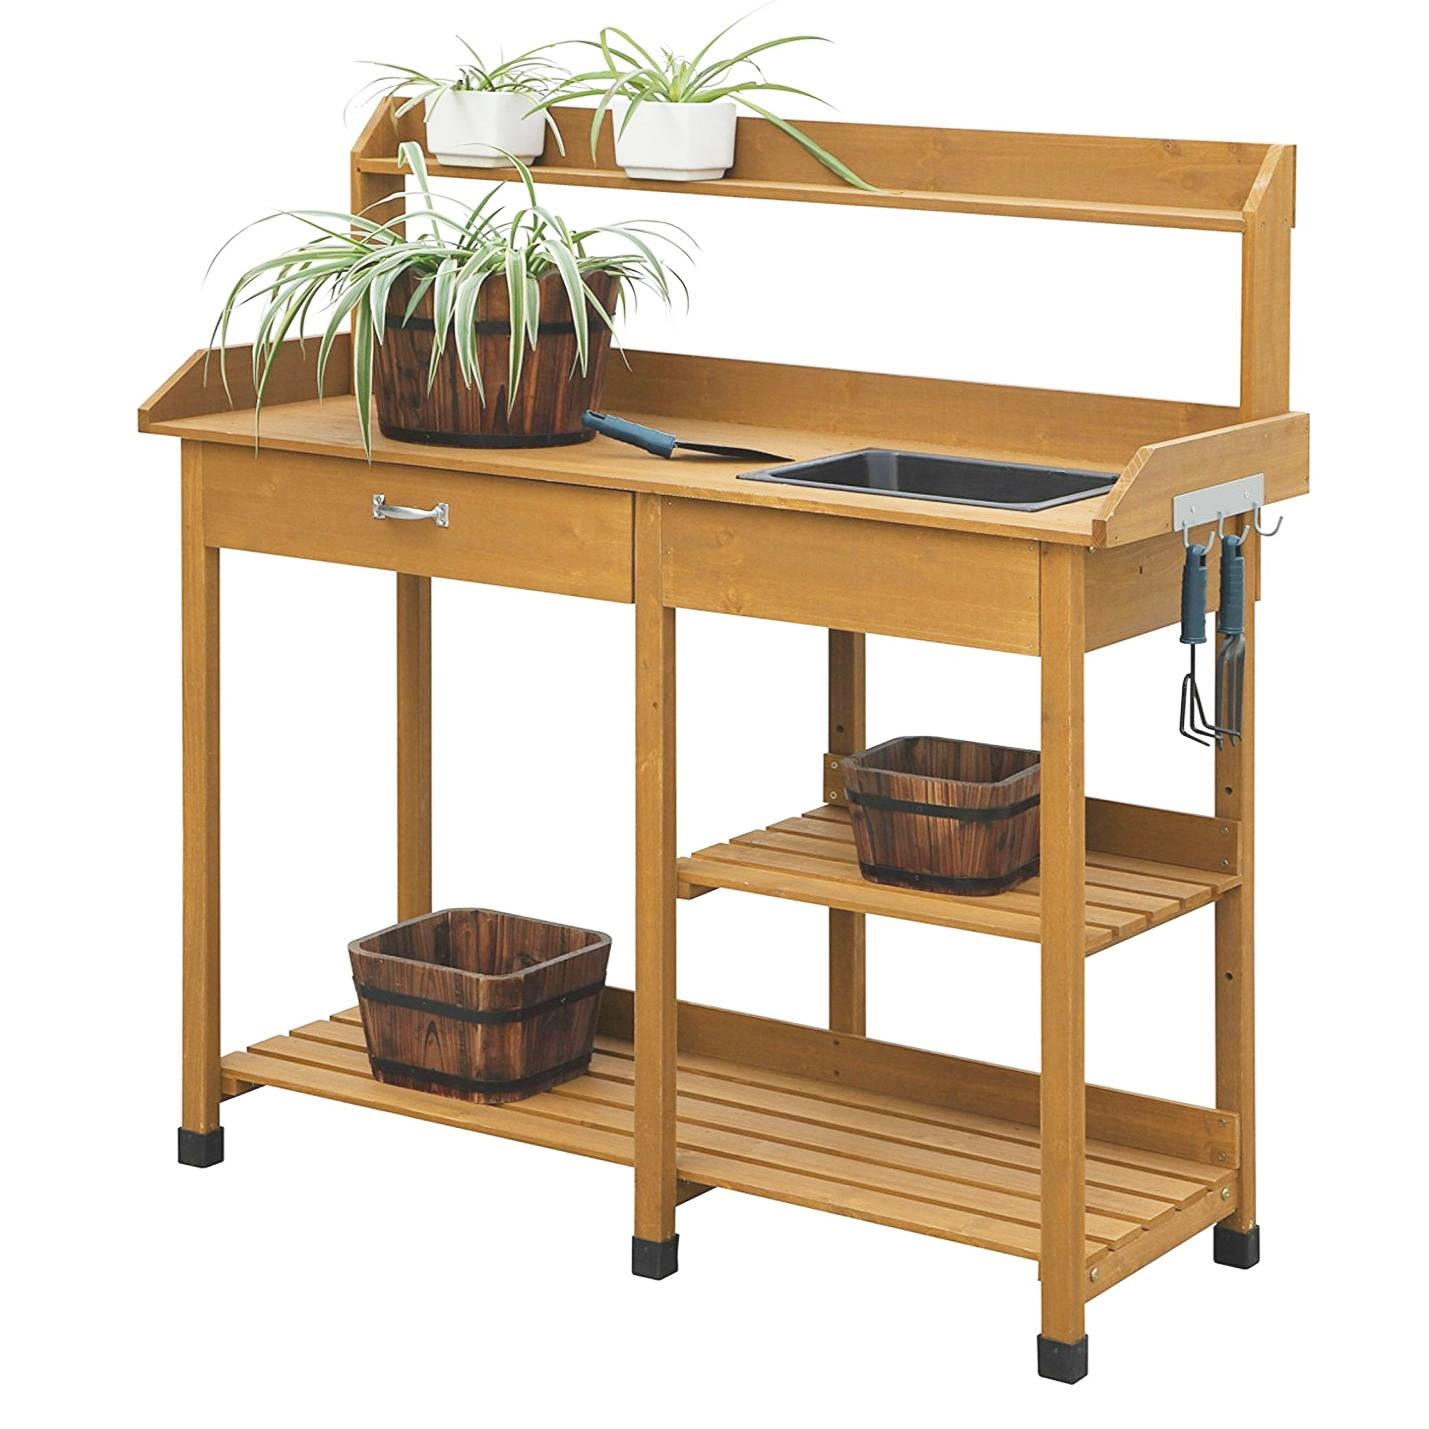 Outdoor Garden Wood Potting Bench Work Table With Sink In Light Oak